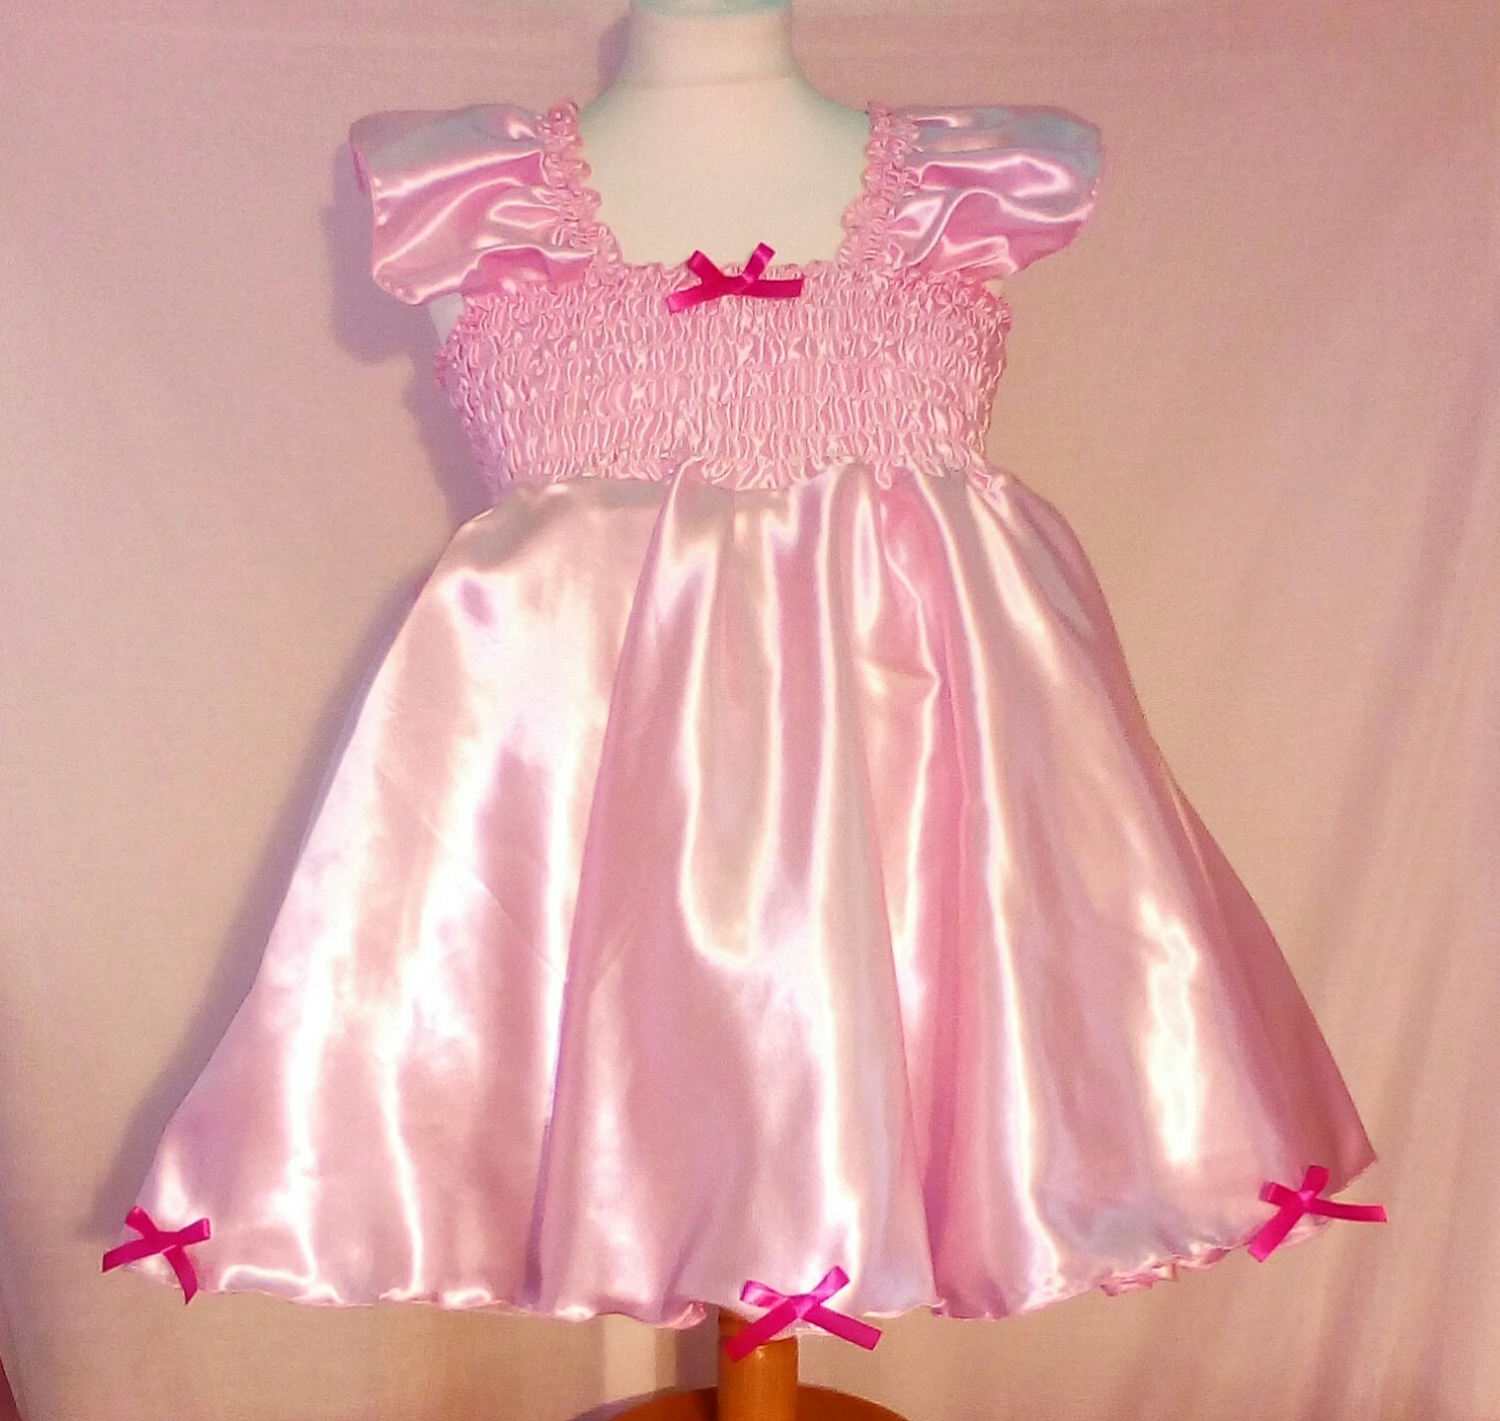 All sizes 39 GBP Adult Baby Sissy Short Dress in Pink Satin with